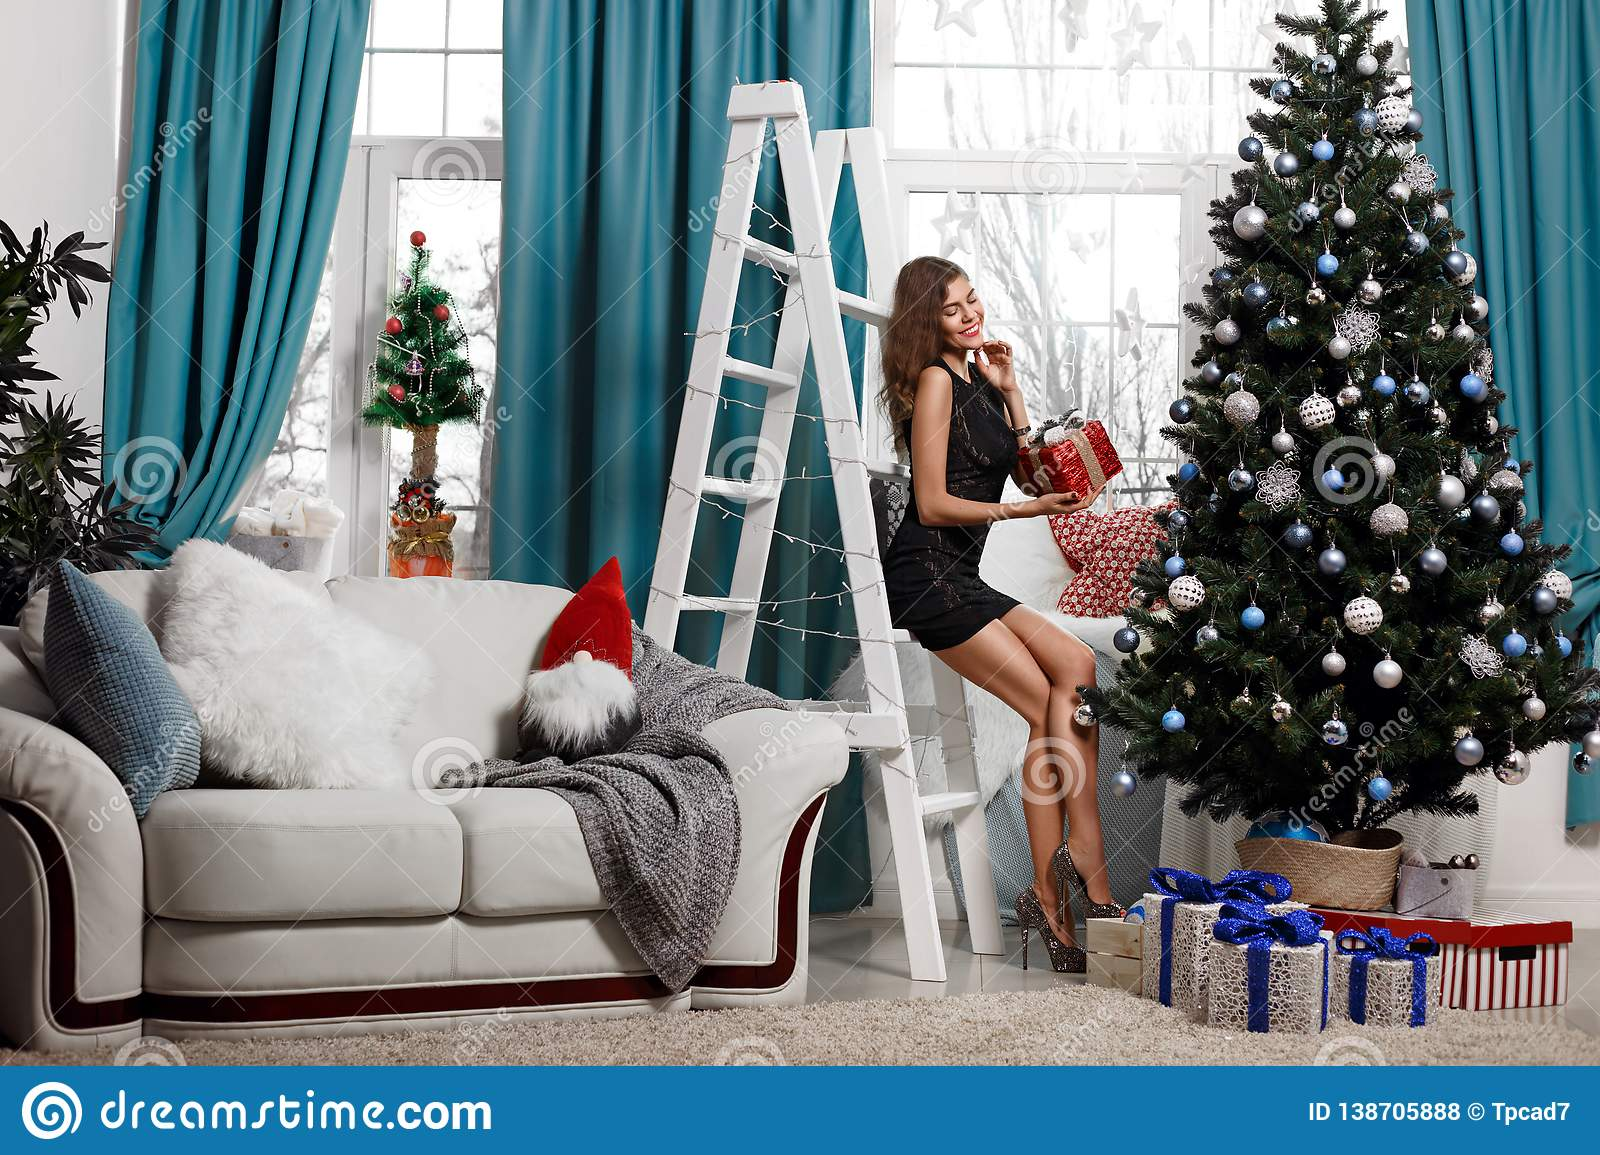 Fashionable young woman in festive dress lays out gifts under the Christmas tree in the living room, enjoying Christmas.